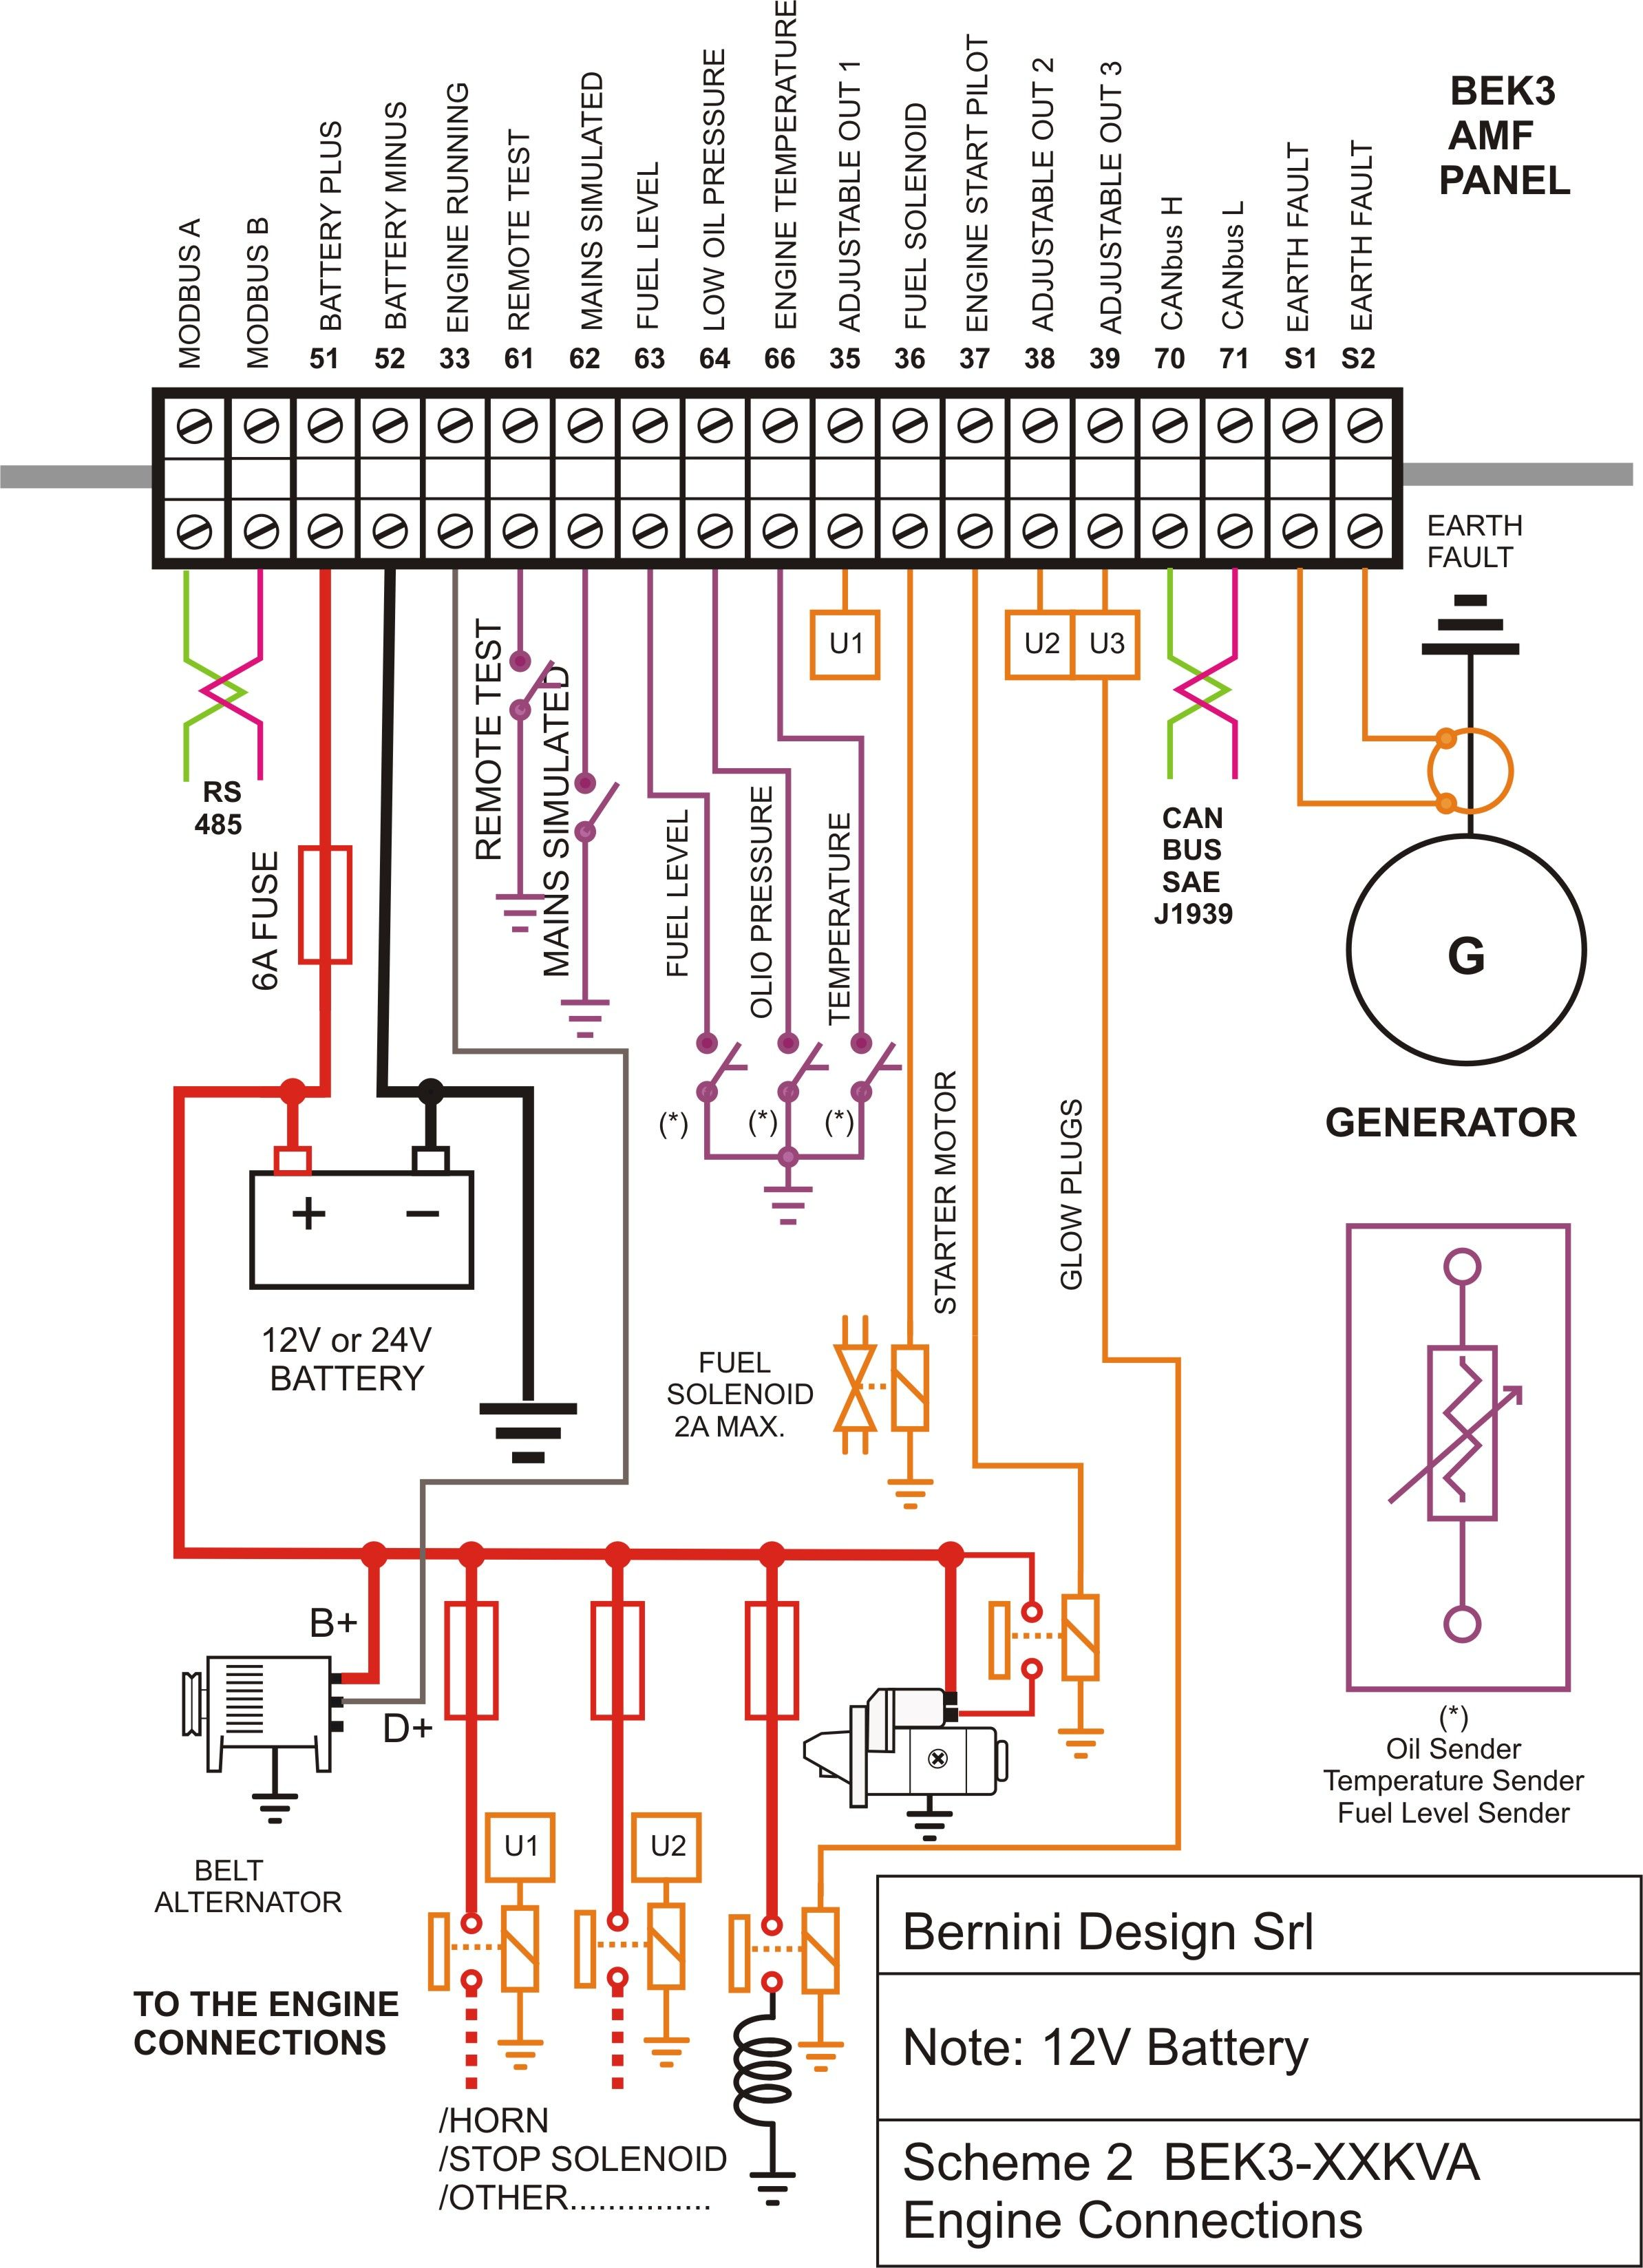 control wiring diagram diesel generator control panel wiring diagram engine ... aftermarket cruise control wiring diagram